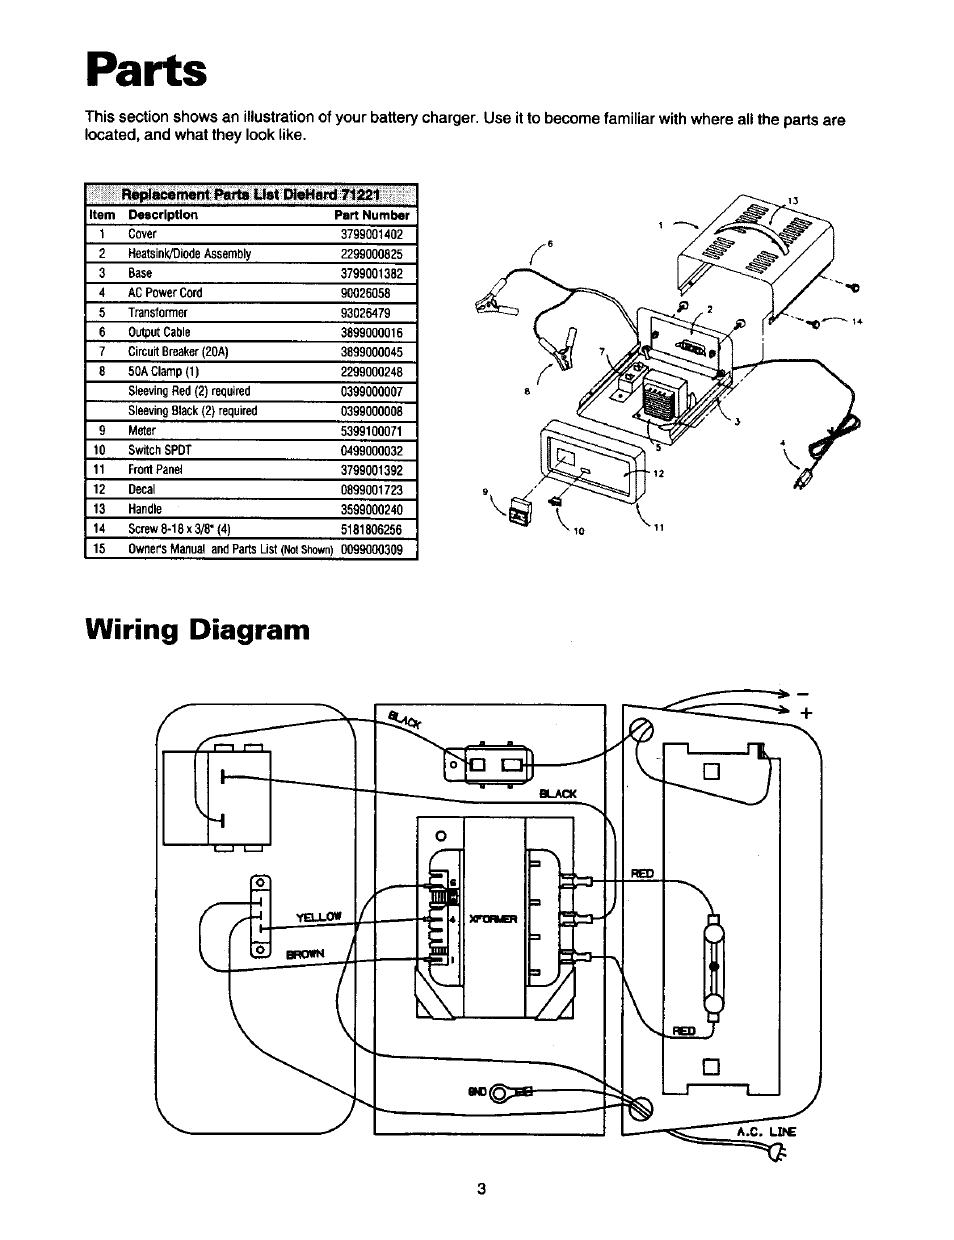 wiring diagram on sears suburban garden tractor wiring diagram on